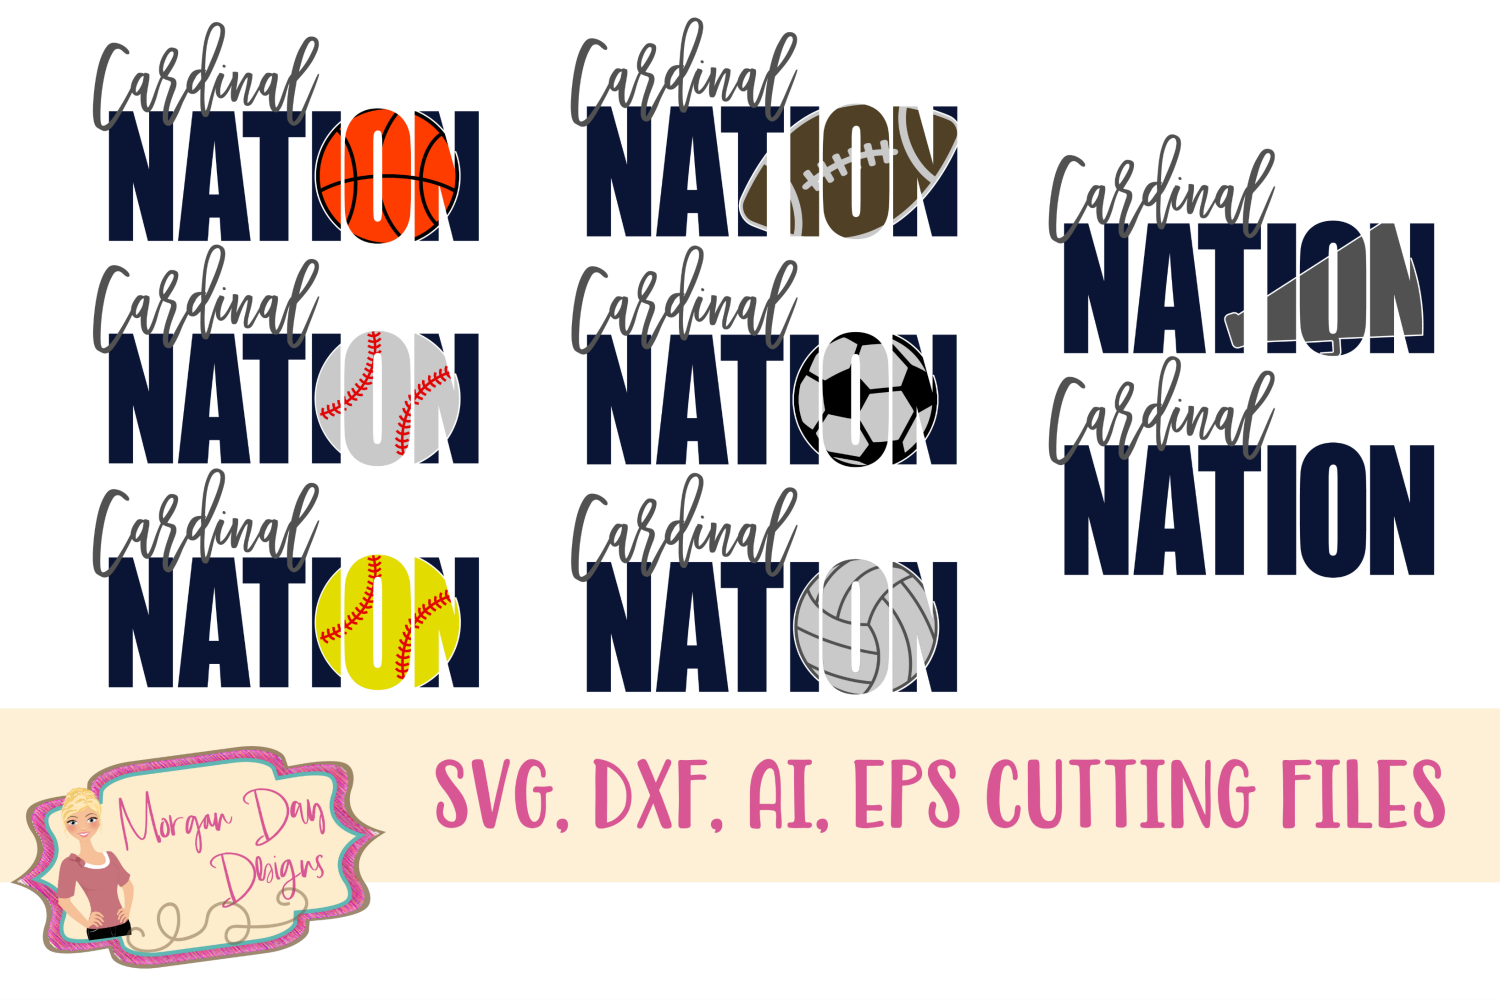 Cardinal Nation SVG, DXF, AI, EPS example image 1